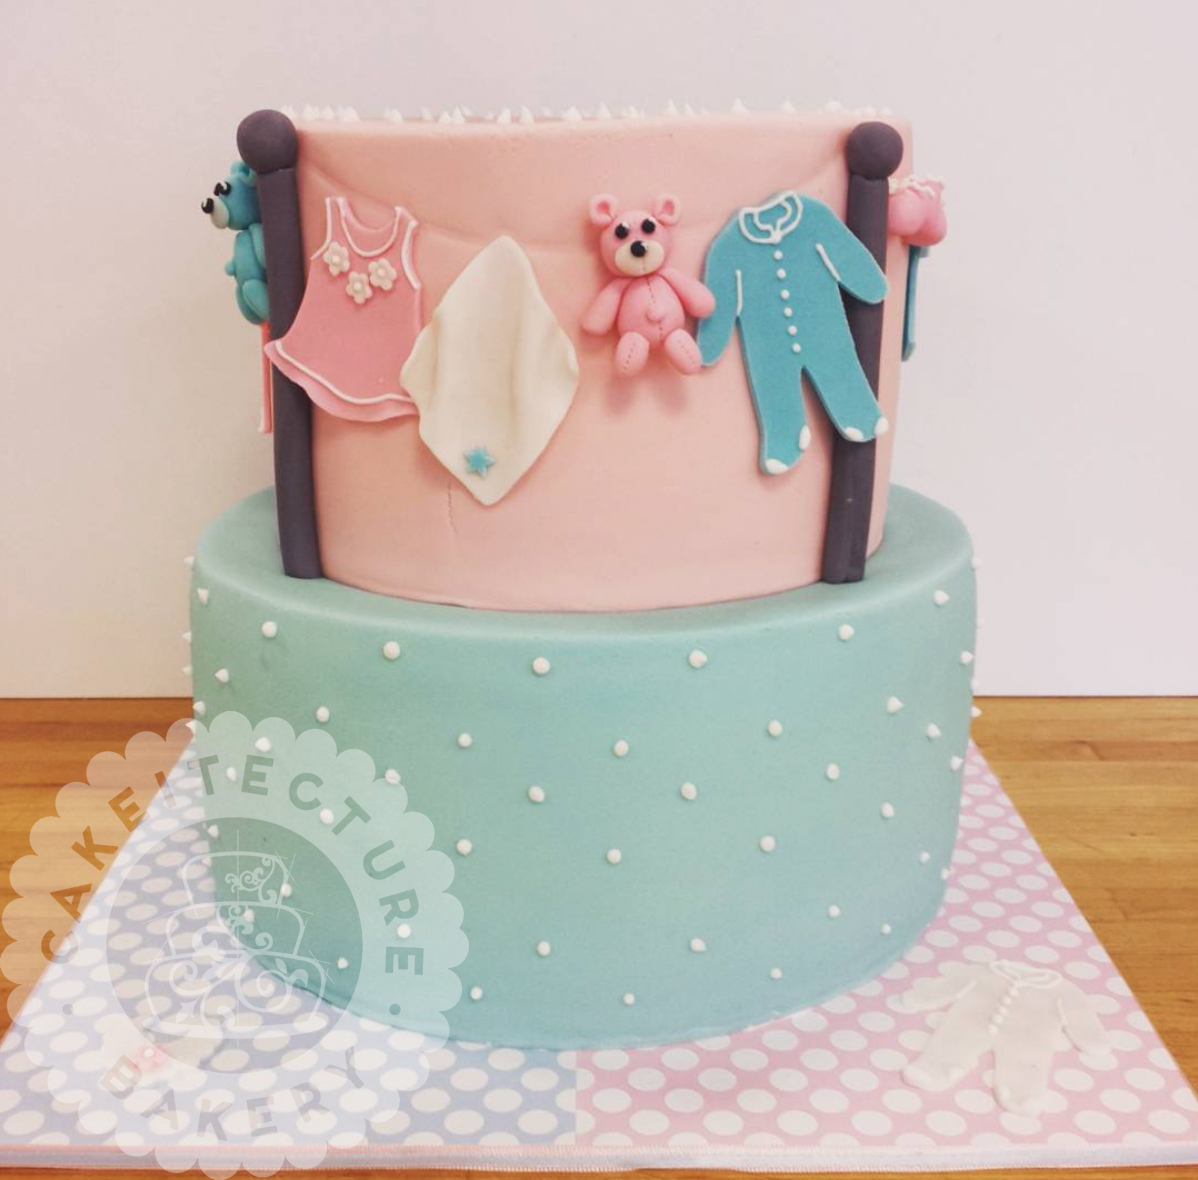 Cakeitecture Bakery stacked28.jpg